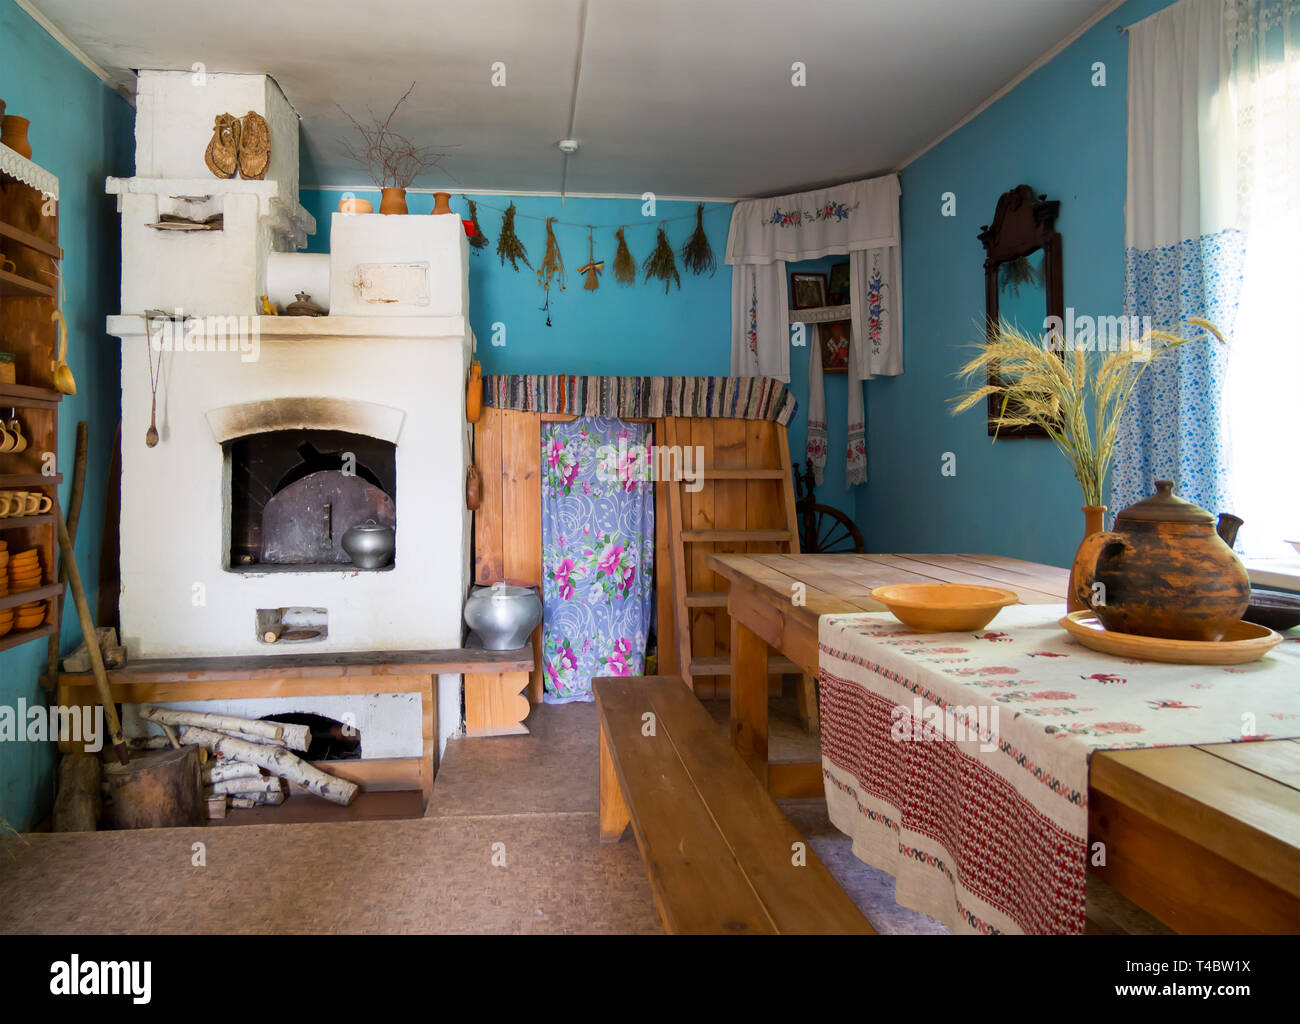 Zadonsk, Russia - August 28, 2018: Interior of Russian izba, reconstruction of Zadonsk Local History Museum,  Zadonsk - Stock Image